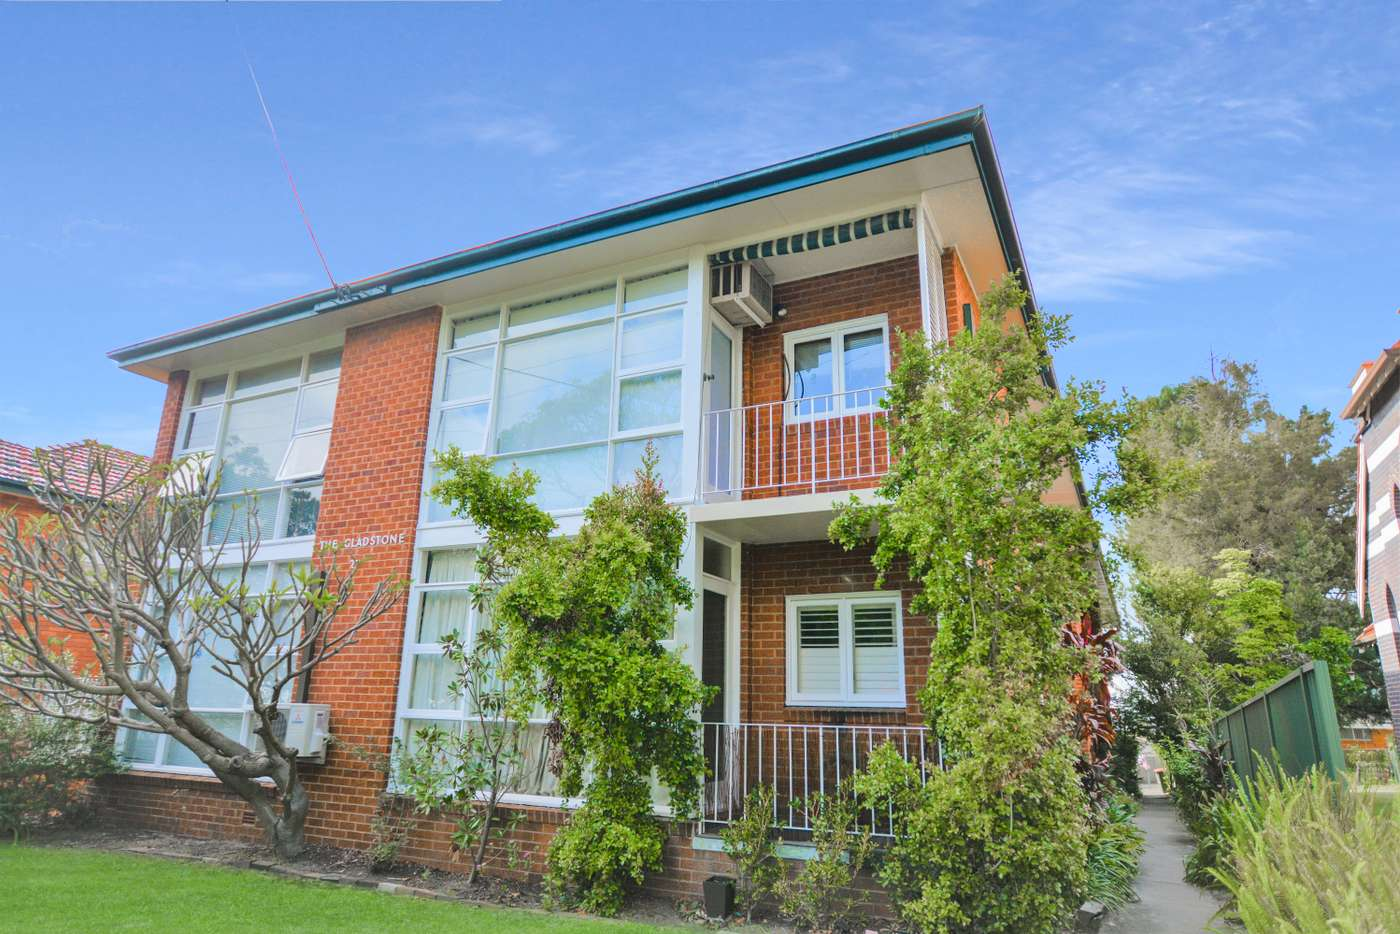 Main view of Homely apartment listing, 10/27 Gladstone Street, Bexley NSW 2207